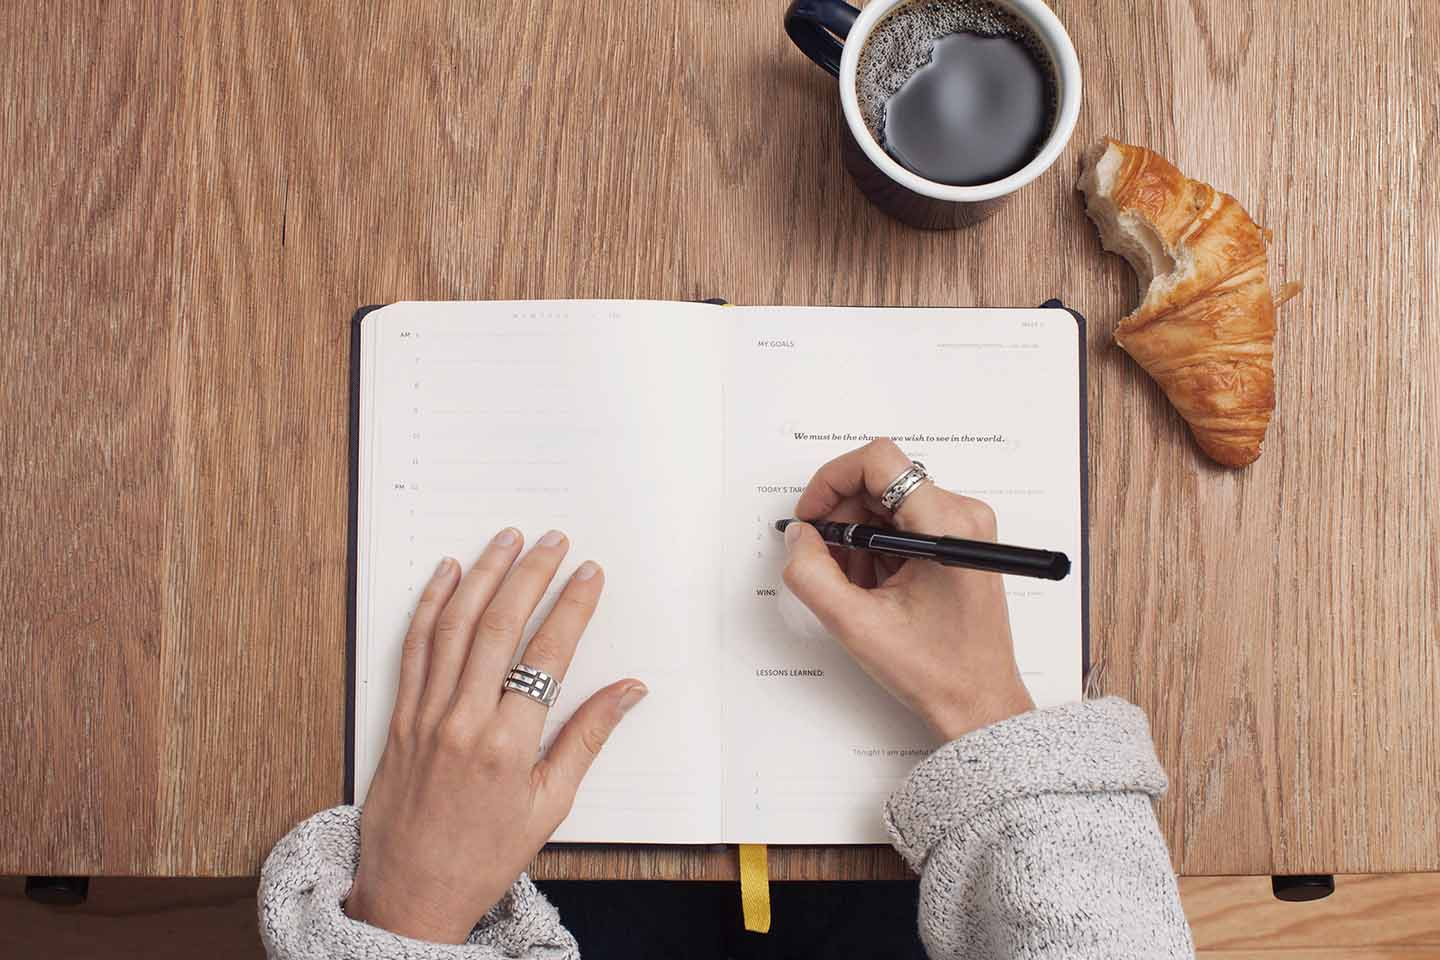 Image of person writing in a notebook